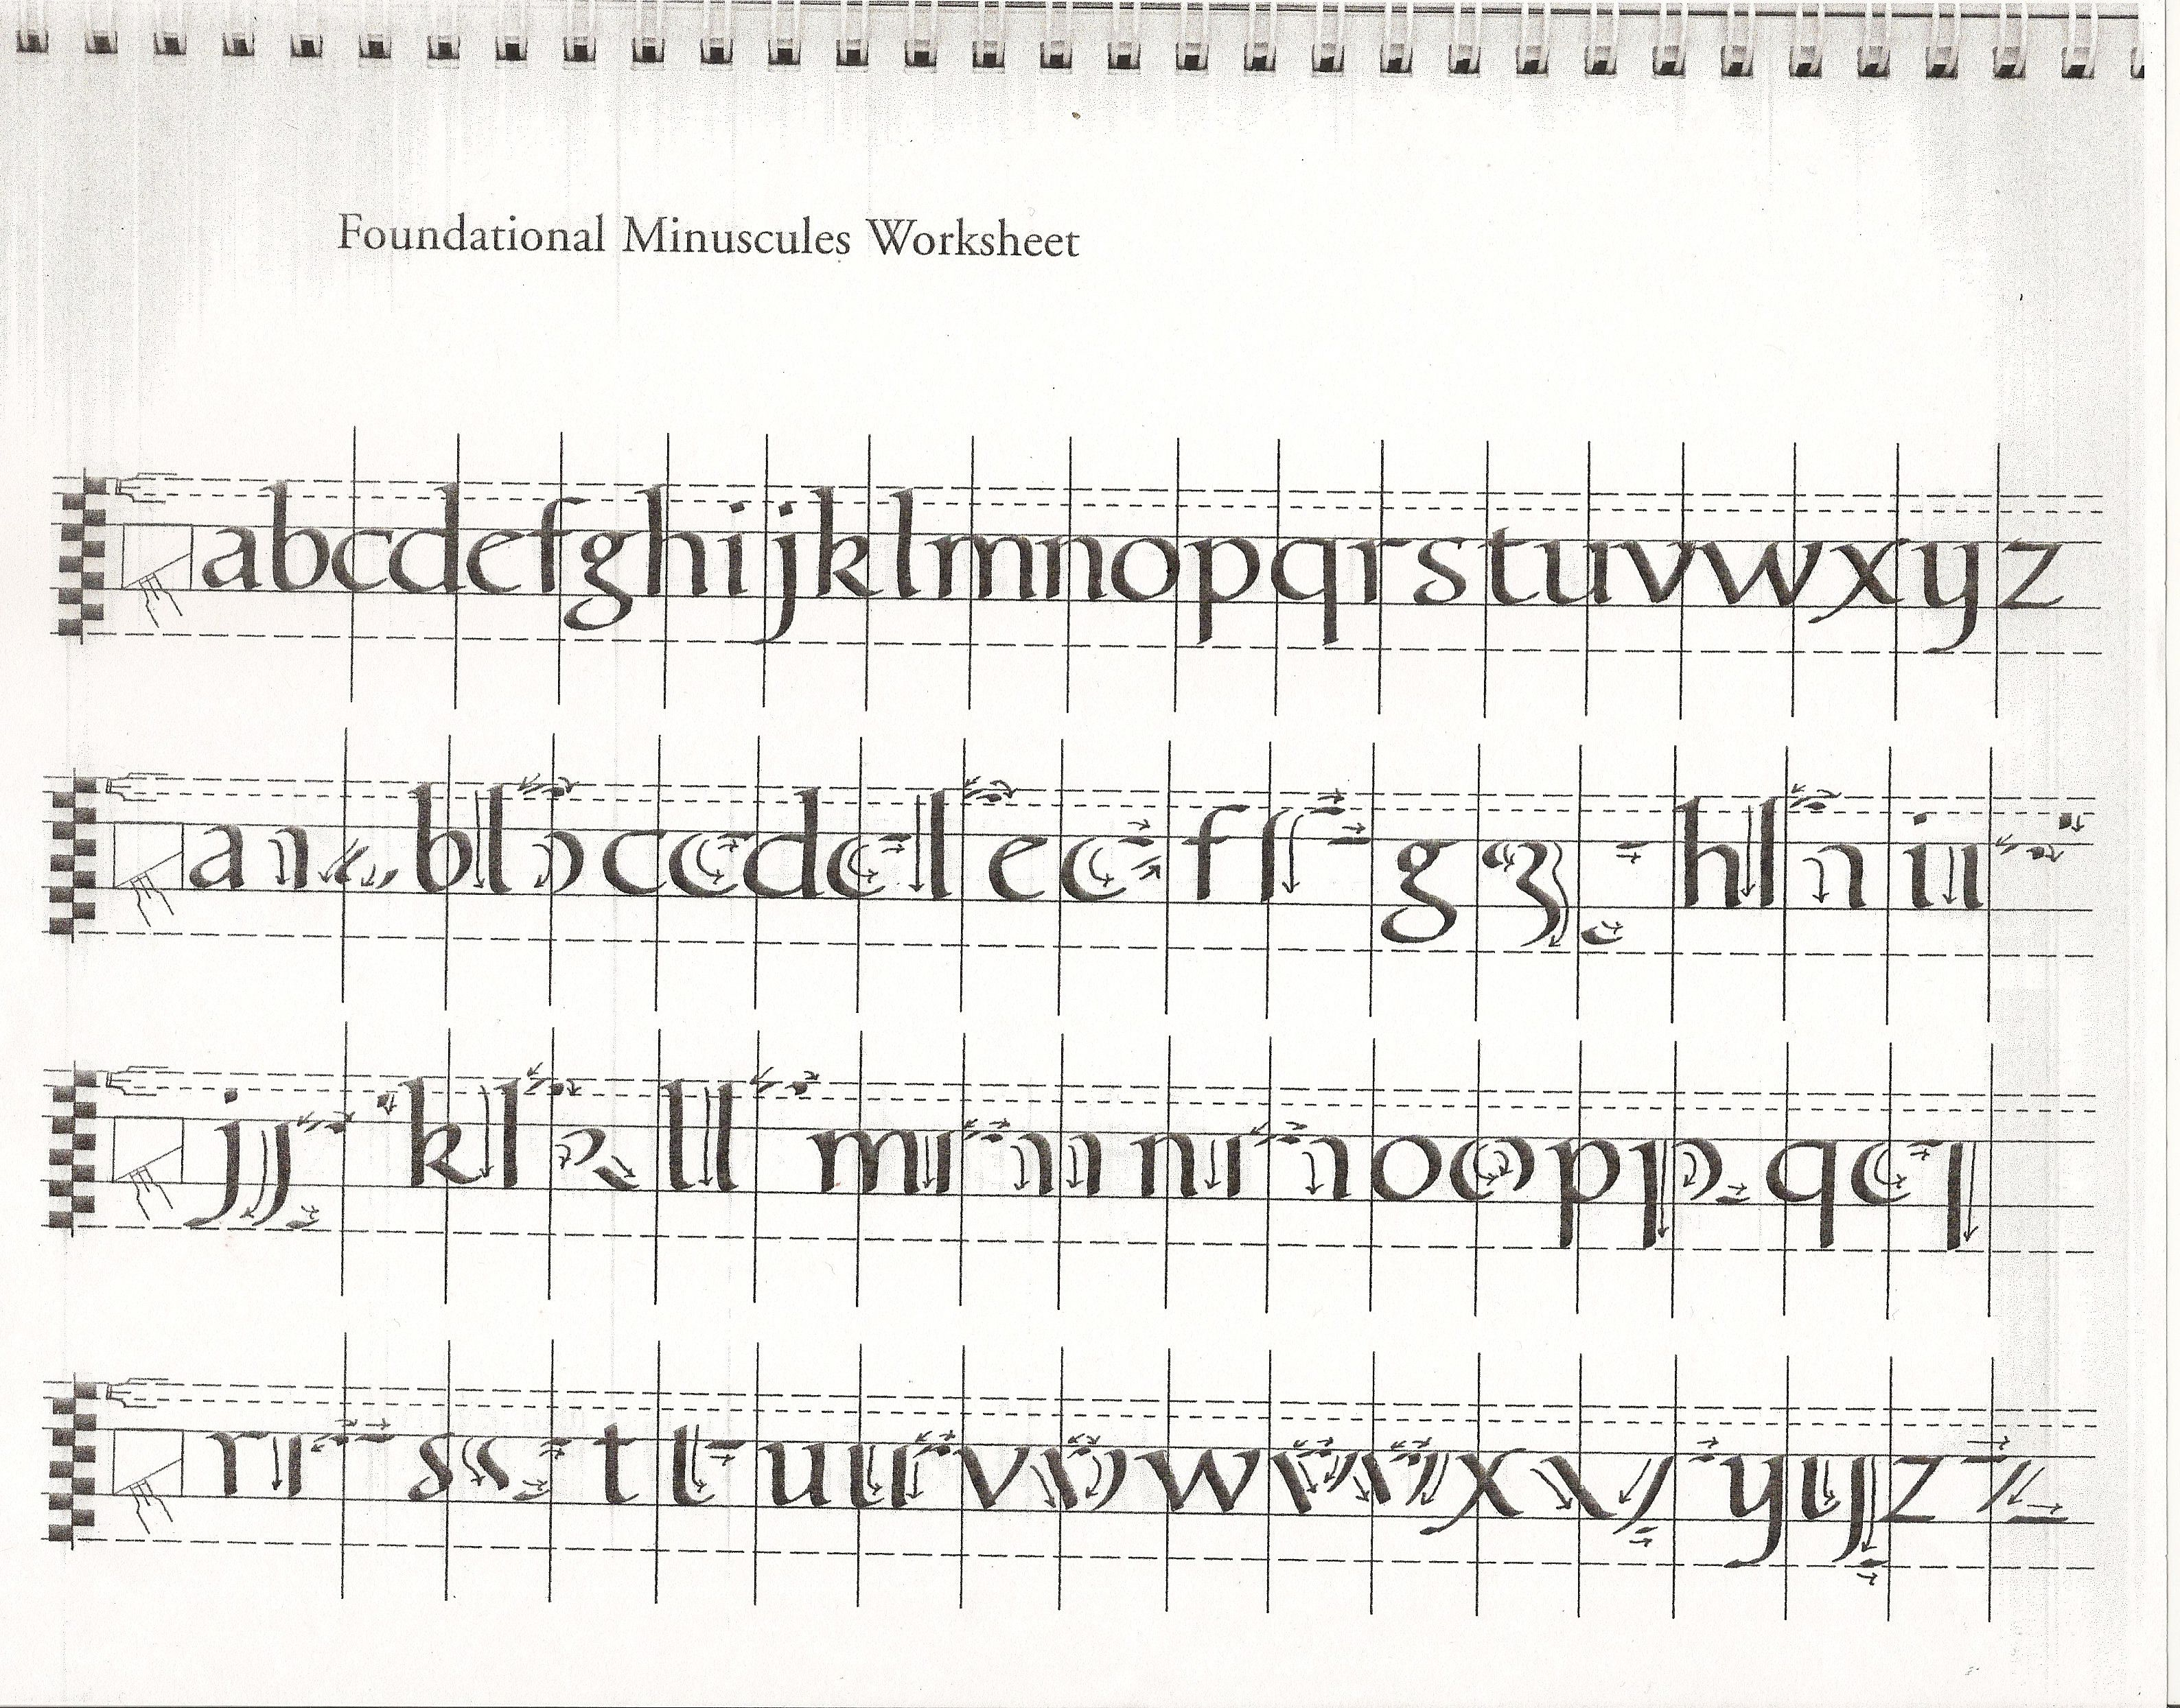 Foundational minuscules worksheet calligraphy